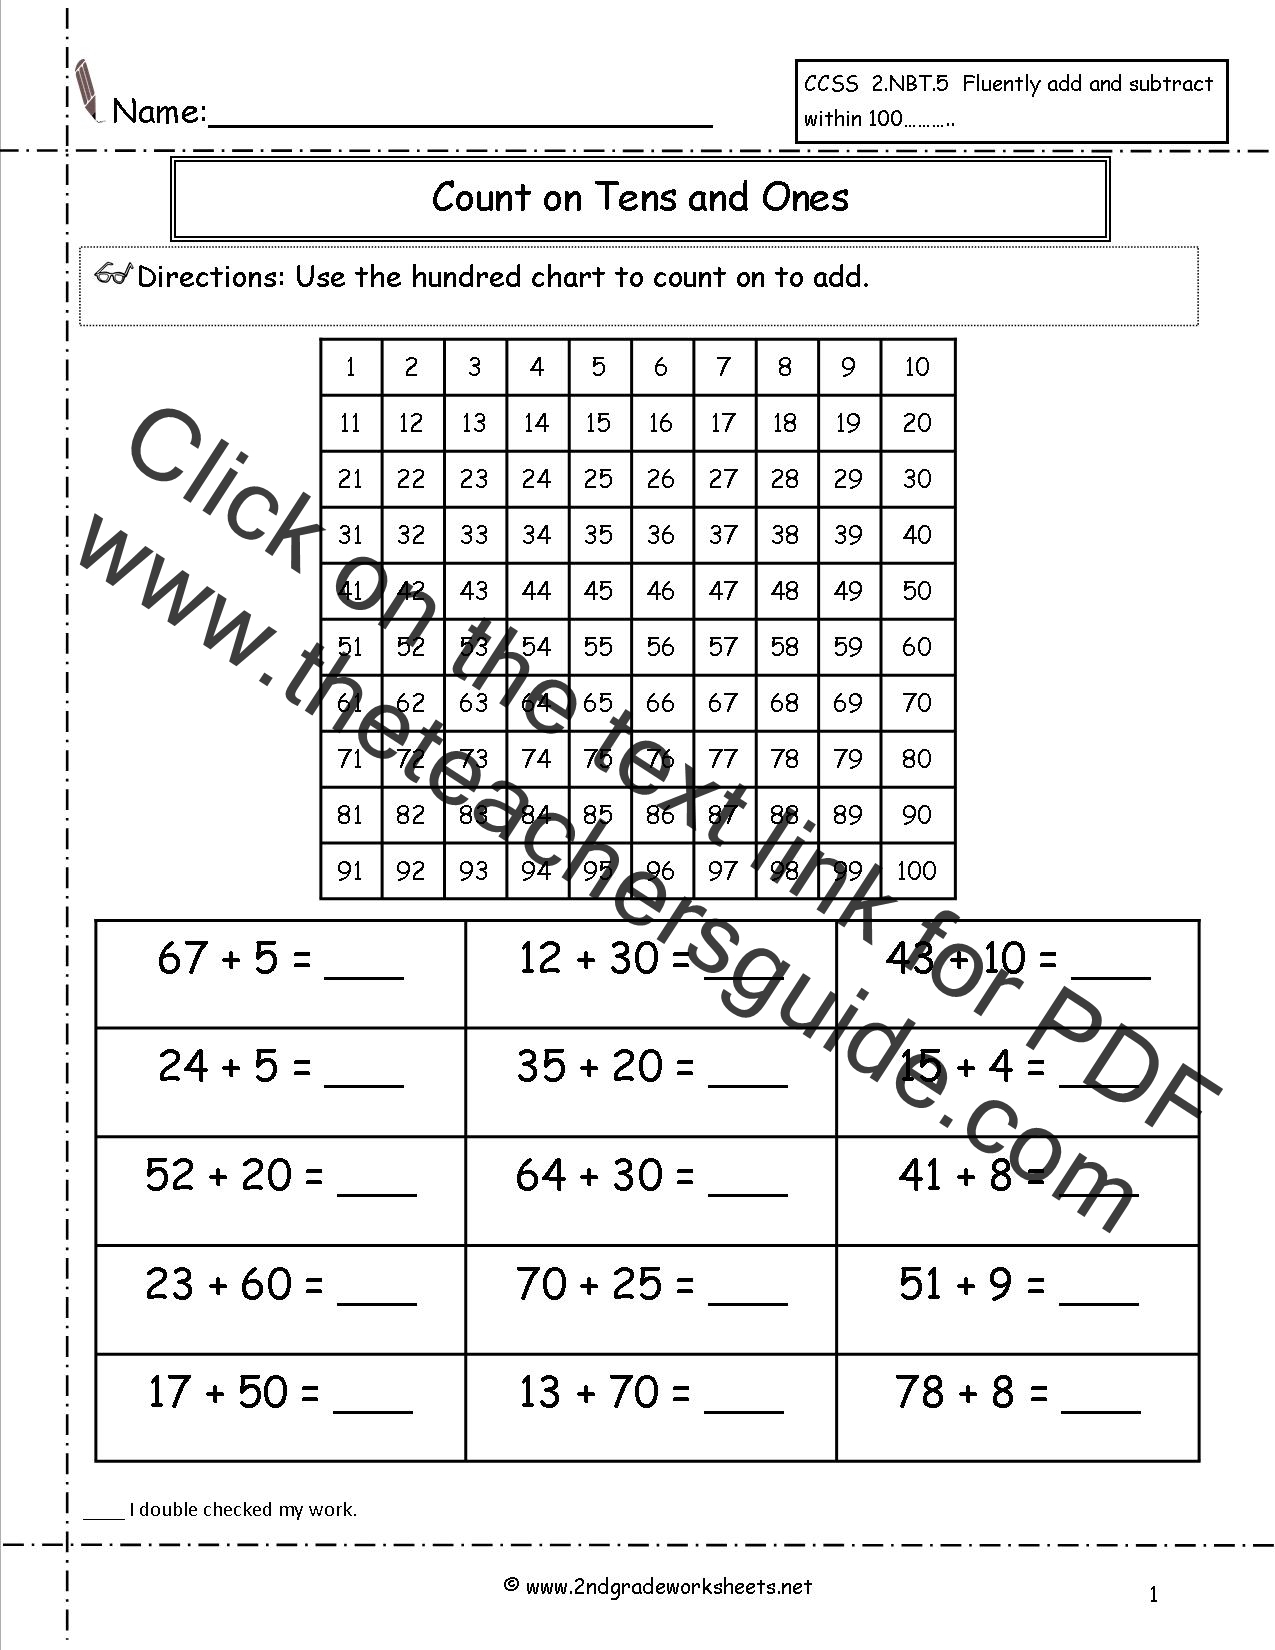 Two Digit Addition Worksheets – Subtracting Tens and Units Worksheets